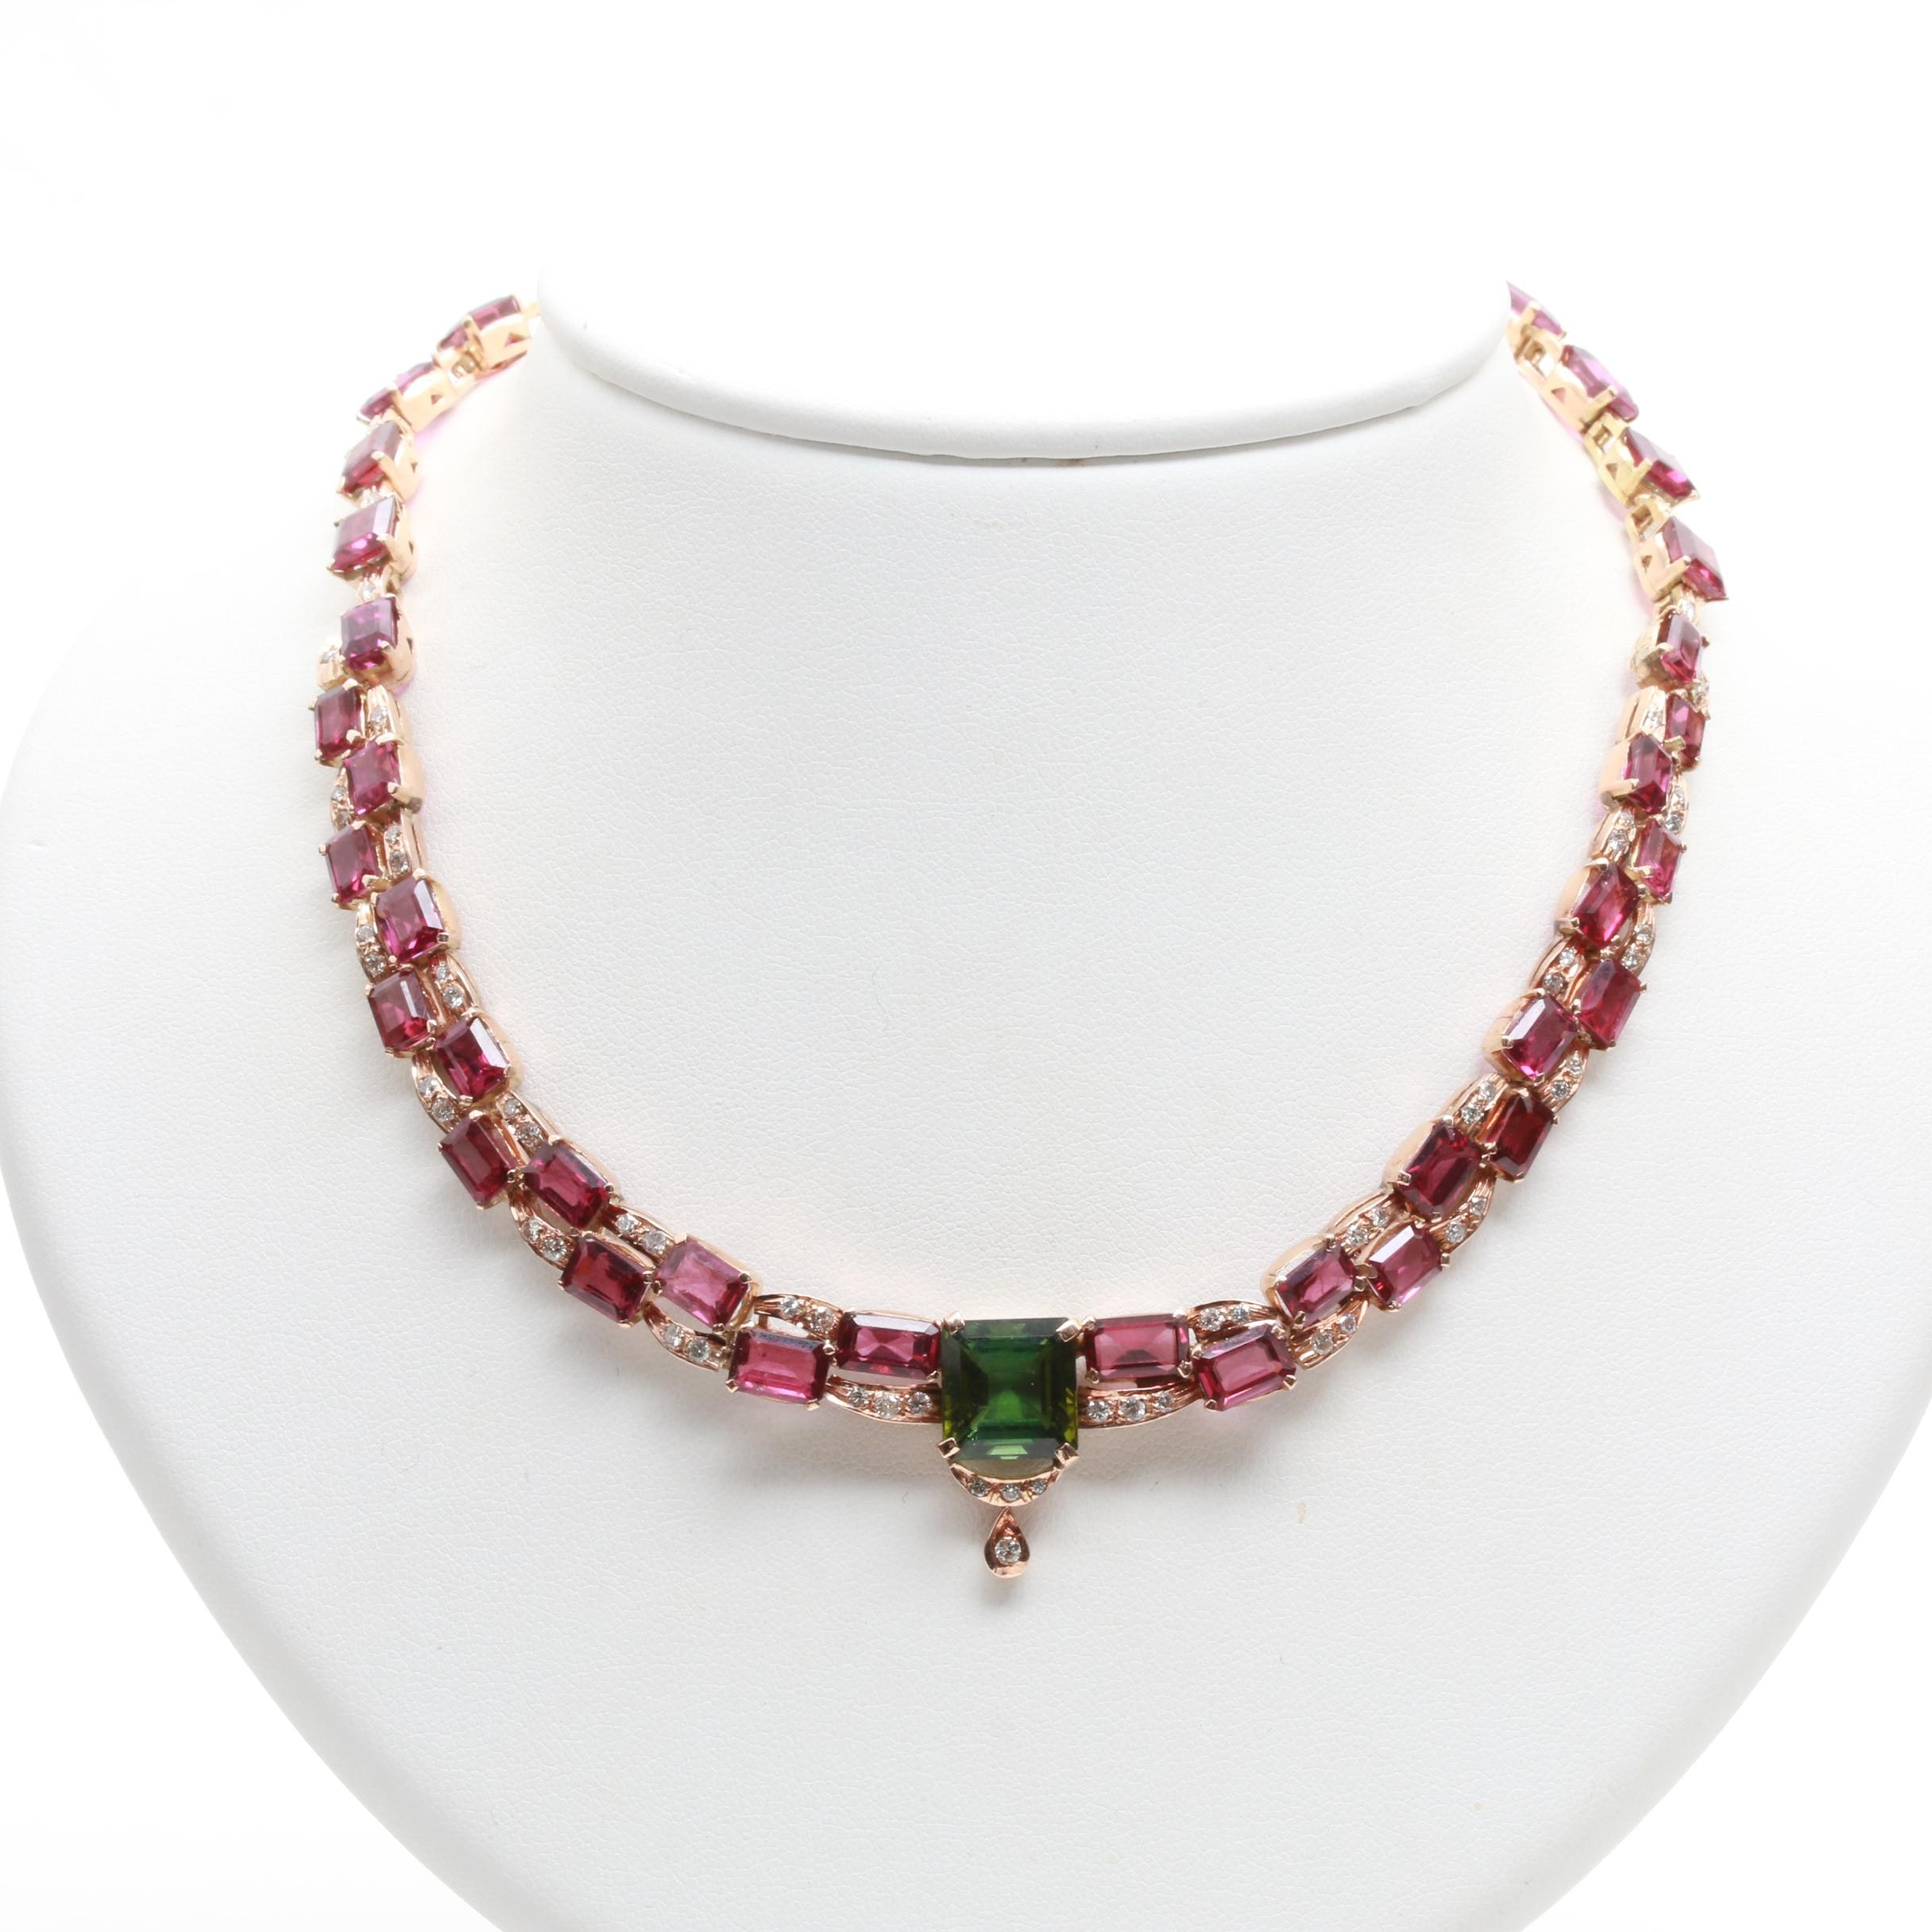 10K Yellow Gold Green Tourmaline, Rhodolite Garnet and 1.21 CTW Diamond Necklace